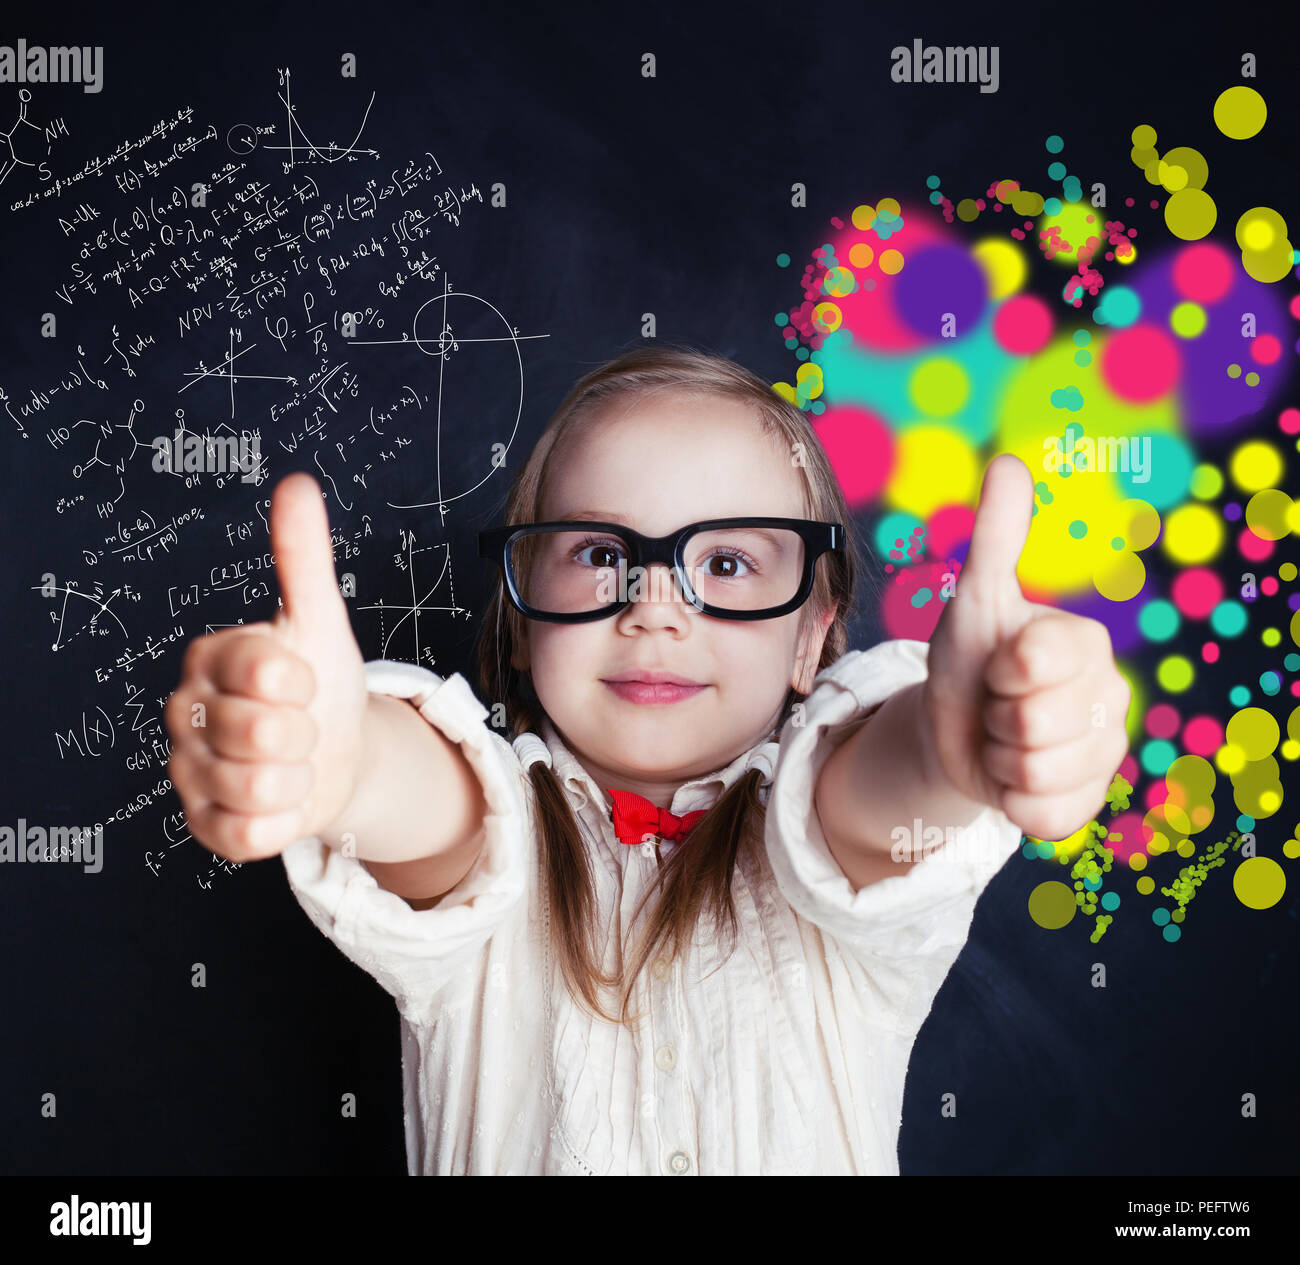 Little genius girl on chalk board in classroom with symbol of right and left hemispheres of the brain - science and arts elements - Stock Image